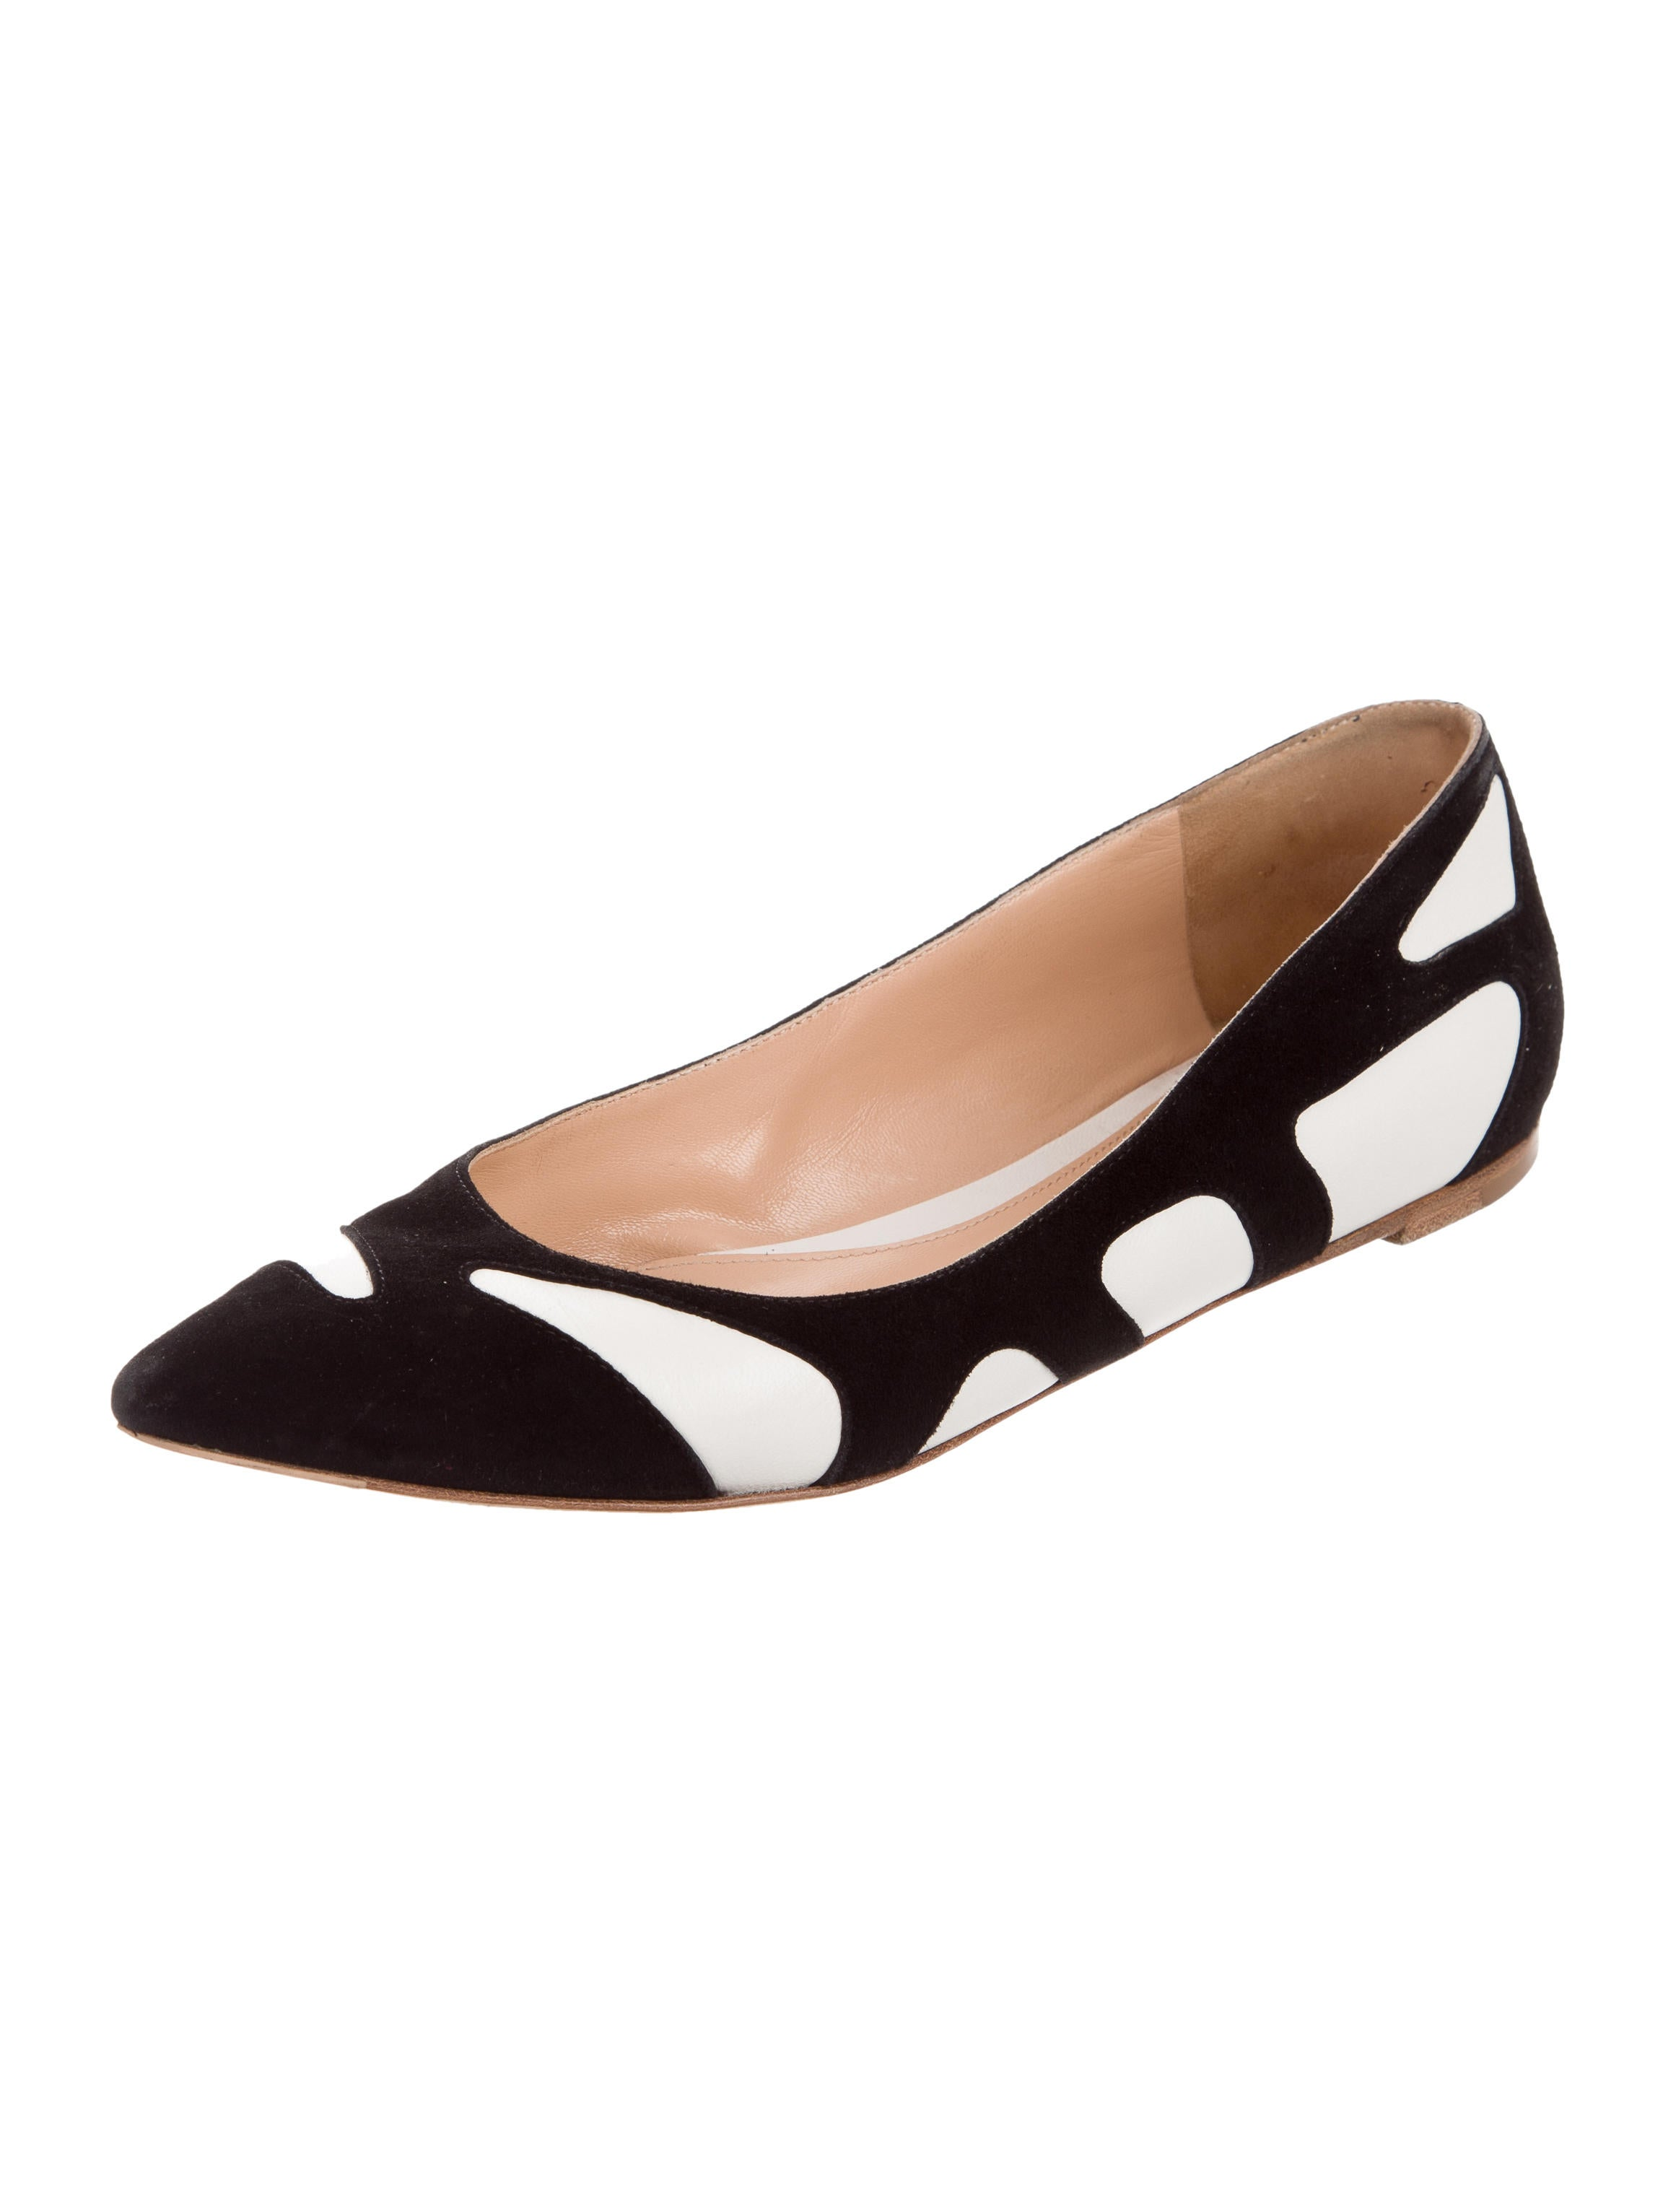 Gianvito Rossi Two-Tone Pointed-Toe Flats free shipping the cheapest low shipping fee sale online ziw3r17